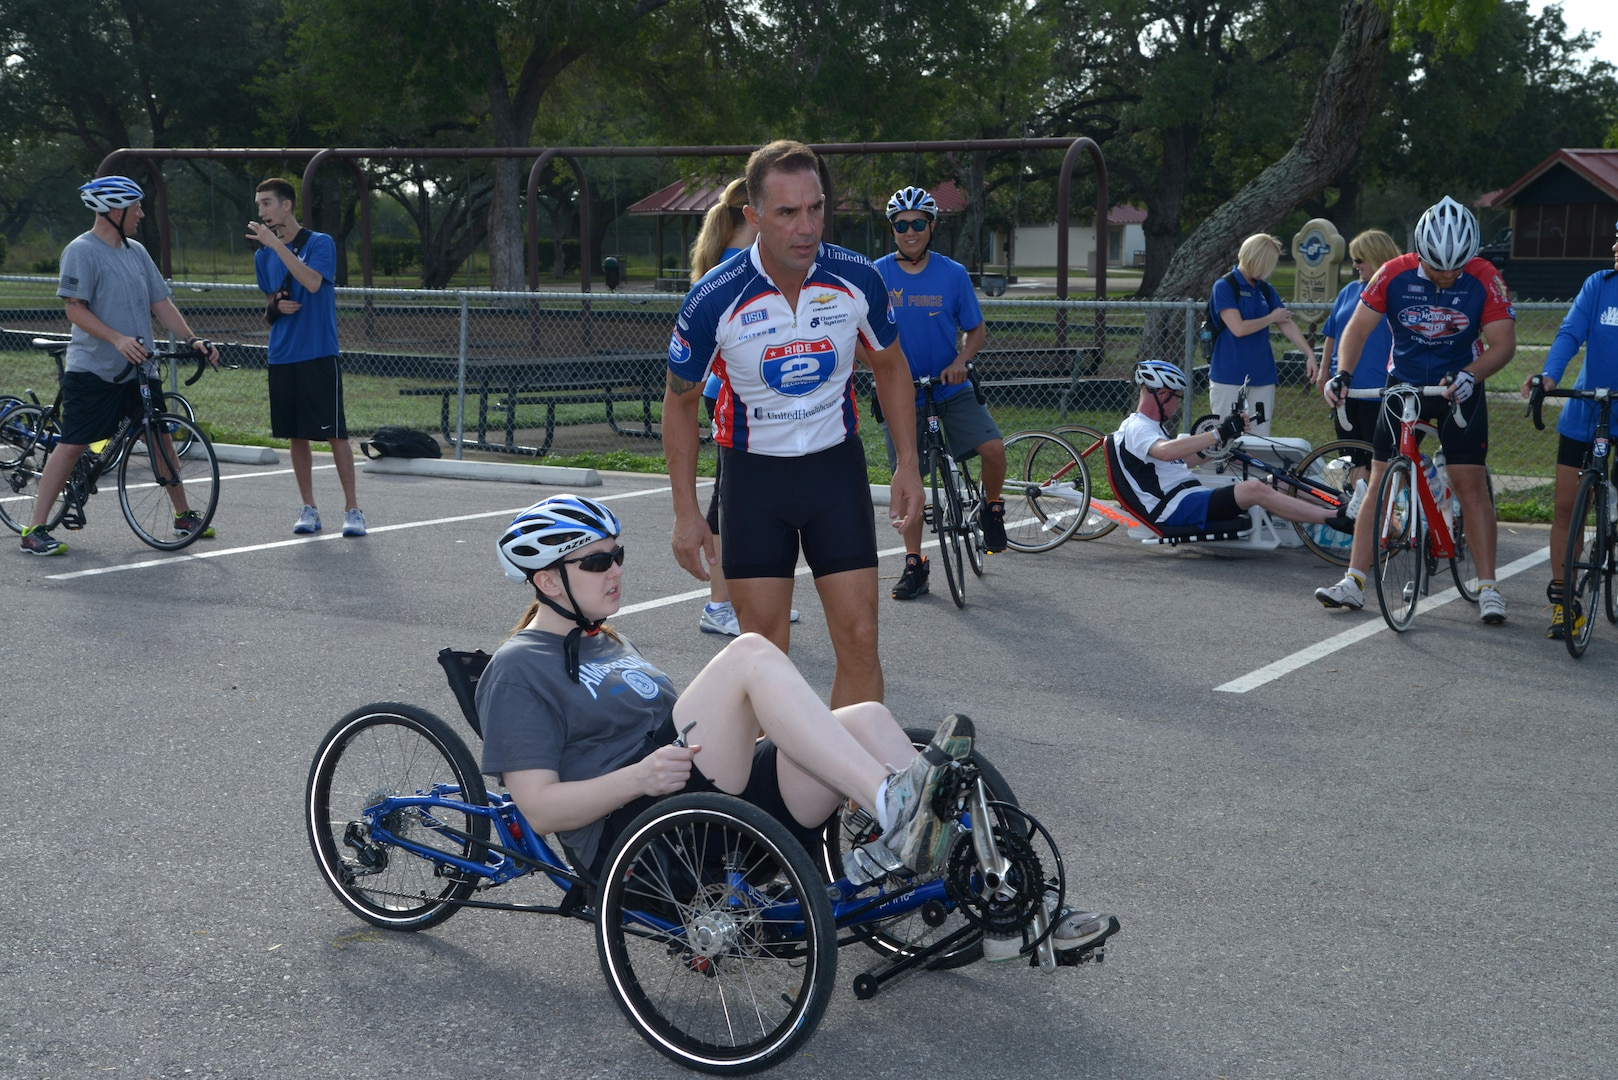 Troy Foster, Air Force Wounded Warrior Program Adaptive Sports Camp coordinator, discusses the cycling route with retired Staff Sgt. Megan Lyon Sept. 18 at Joint Base San Antonio-Randolph. The camp was provided by the Air Force Wounded Warrior Program, which introduces wounded, injured and ill Airmen to adaptive sports, such as wheelchair basketball and sitting volleyball, as early in the healing process as possible to get them interested in competing locally, or even at the national level at the Warrior Games in Colorado Springs, Colo. (U.S. Air Force photo by Joel Martinez/Released)